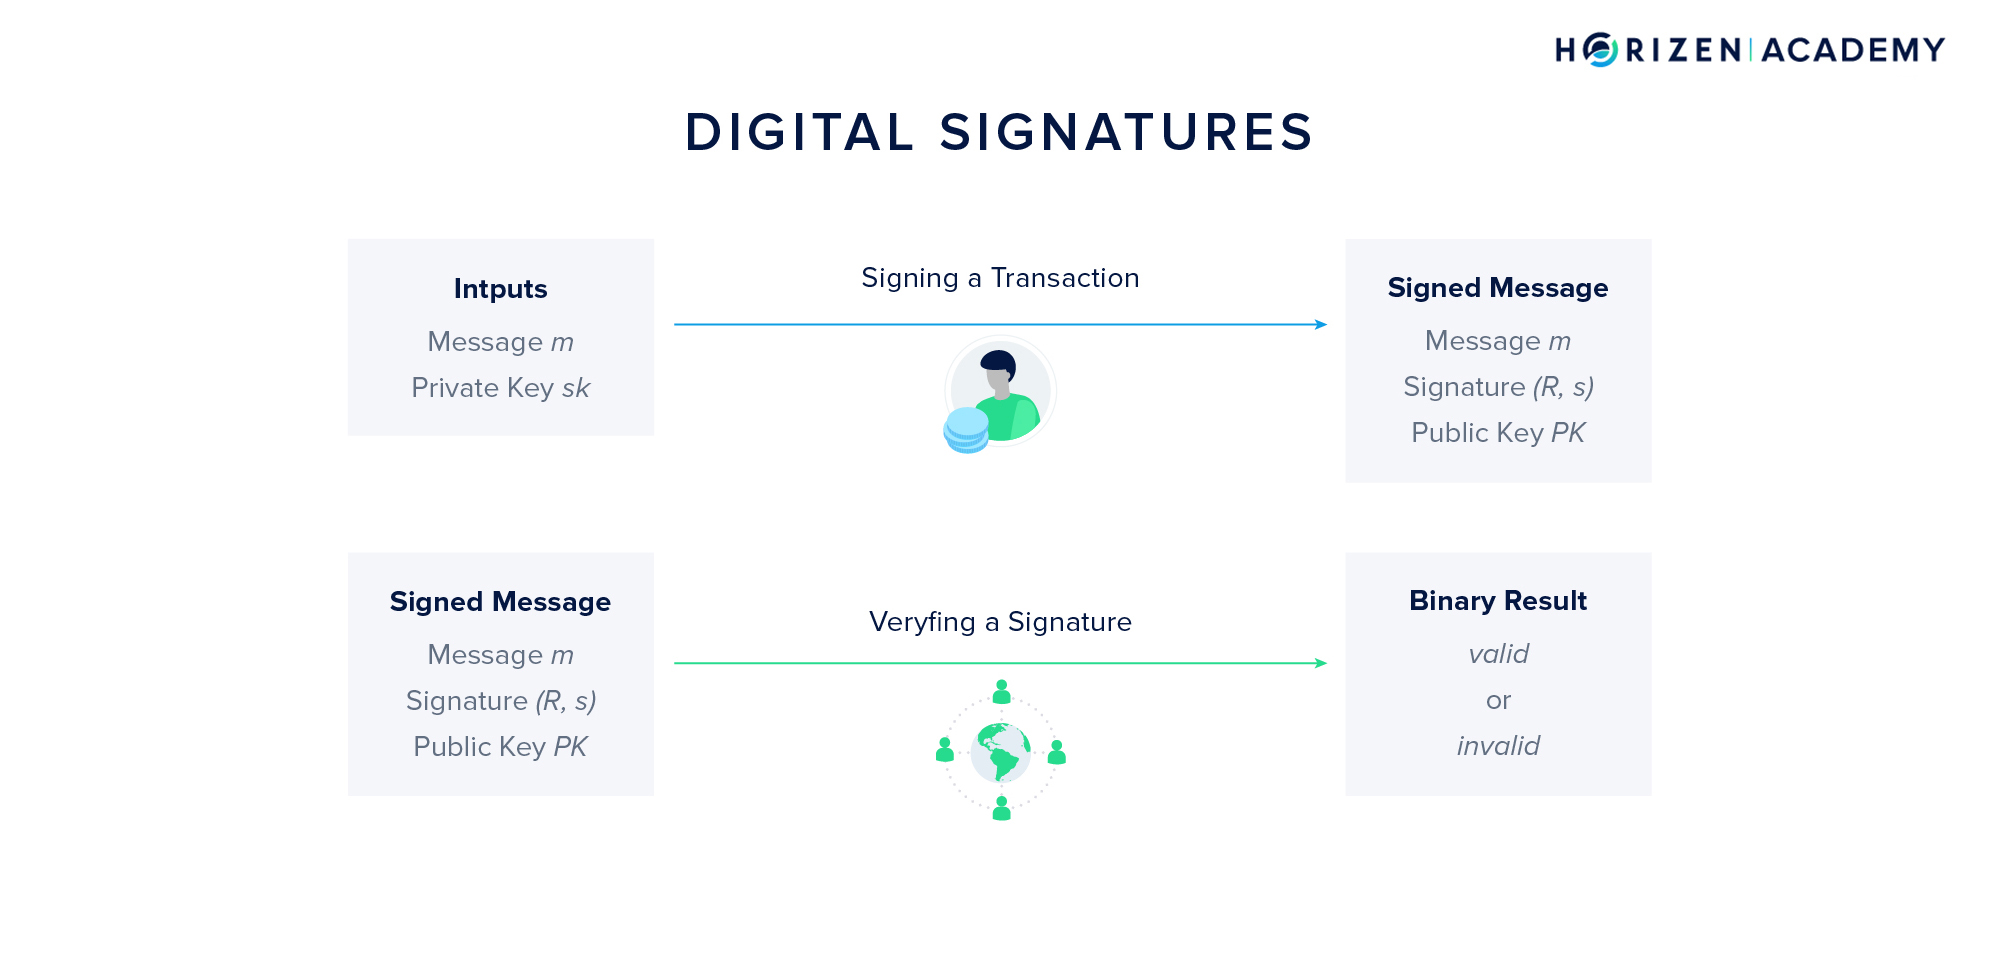 Creating a Digital Signature and Verifying It